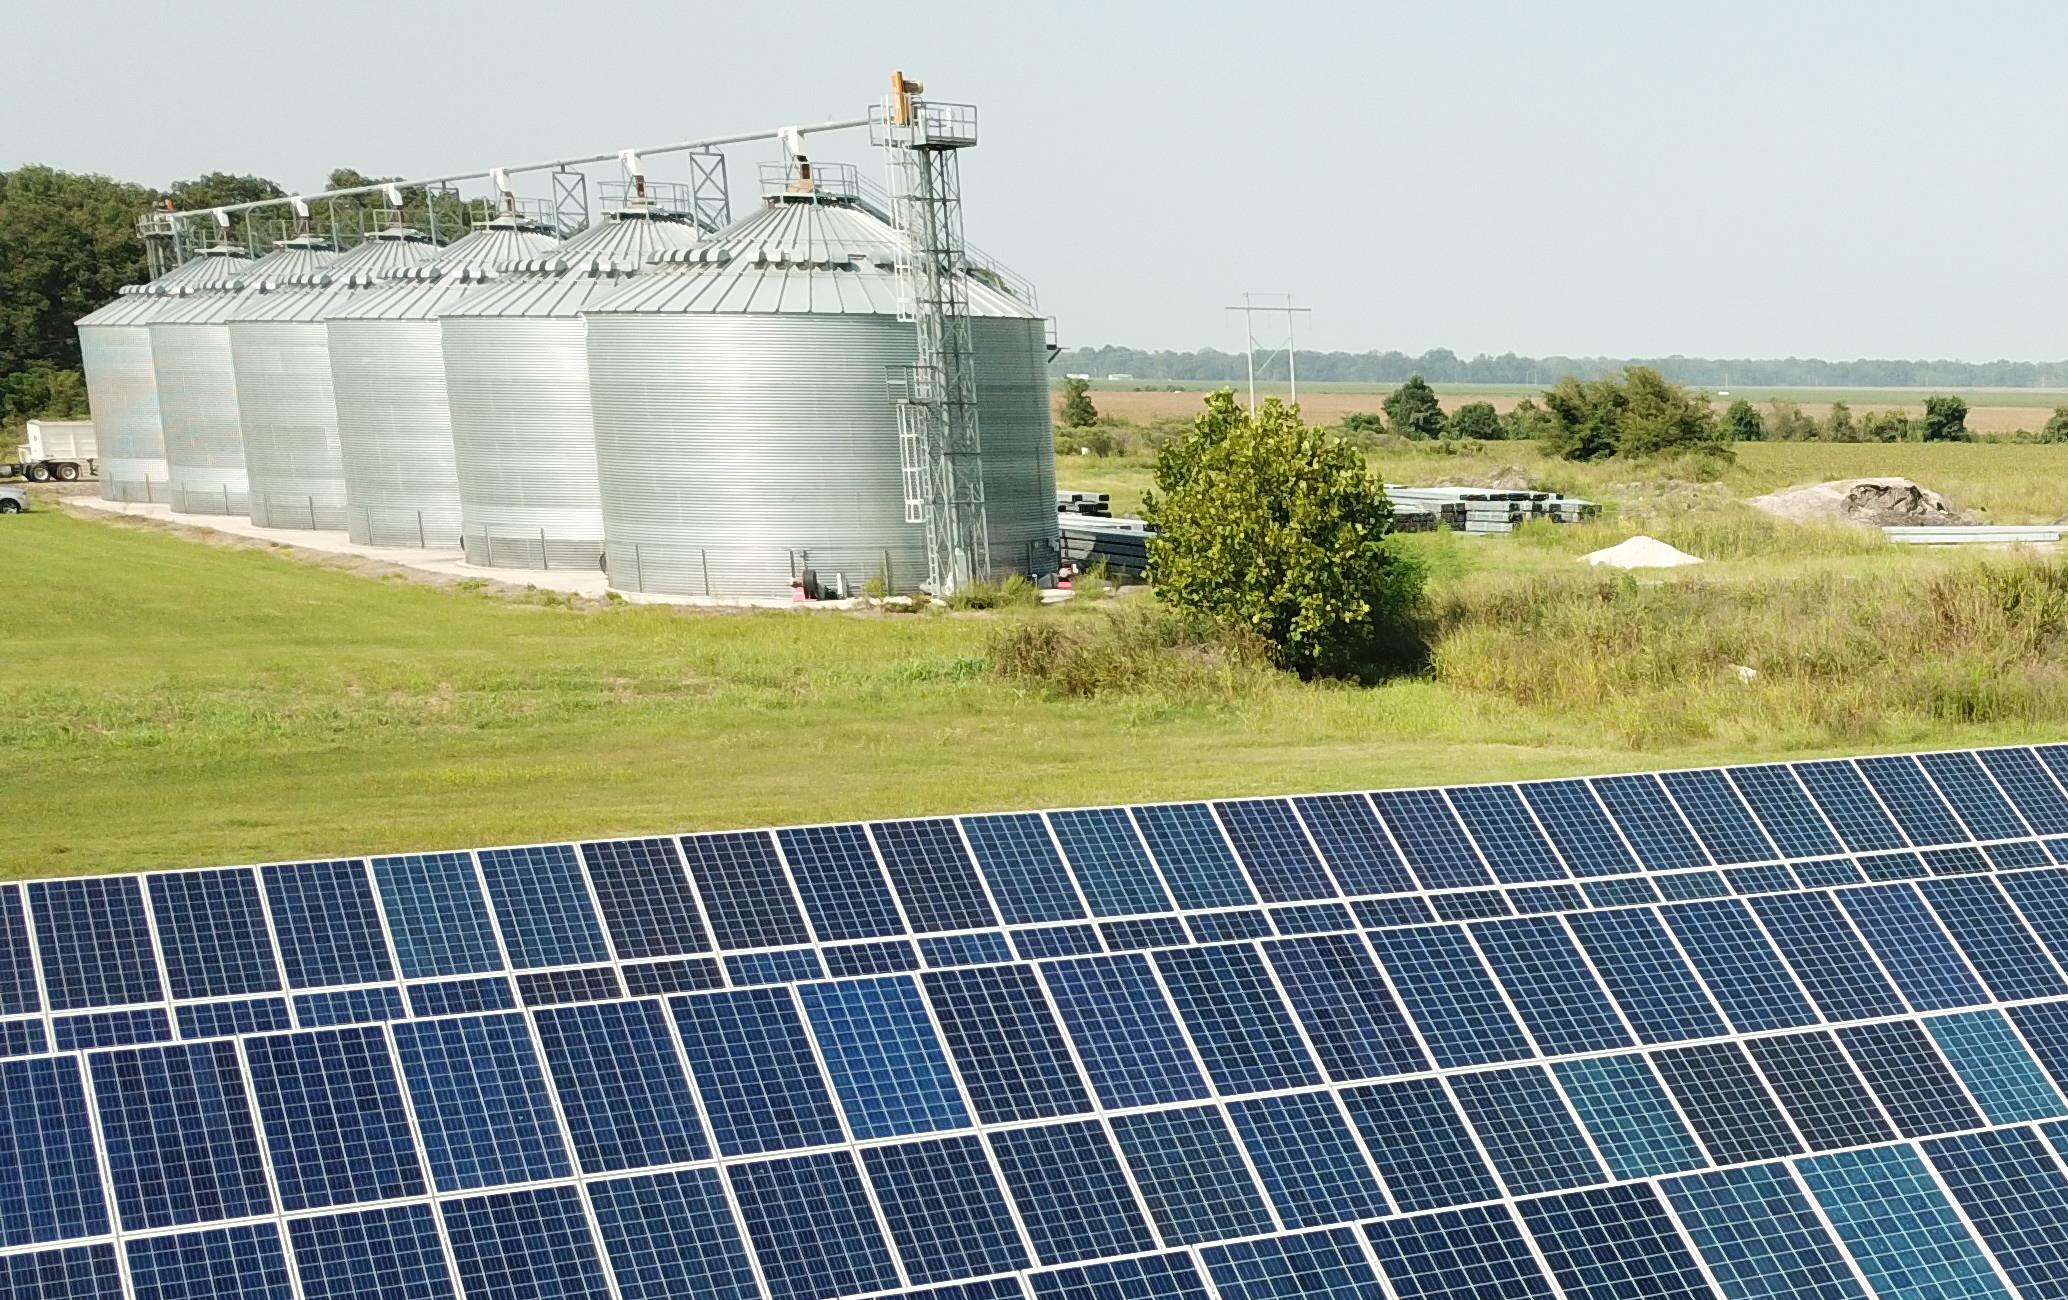 Rows of blue solar panels in a green field with grain bins in the background